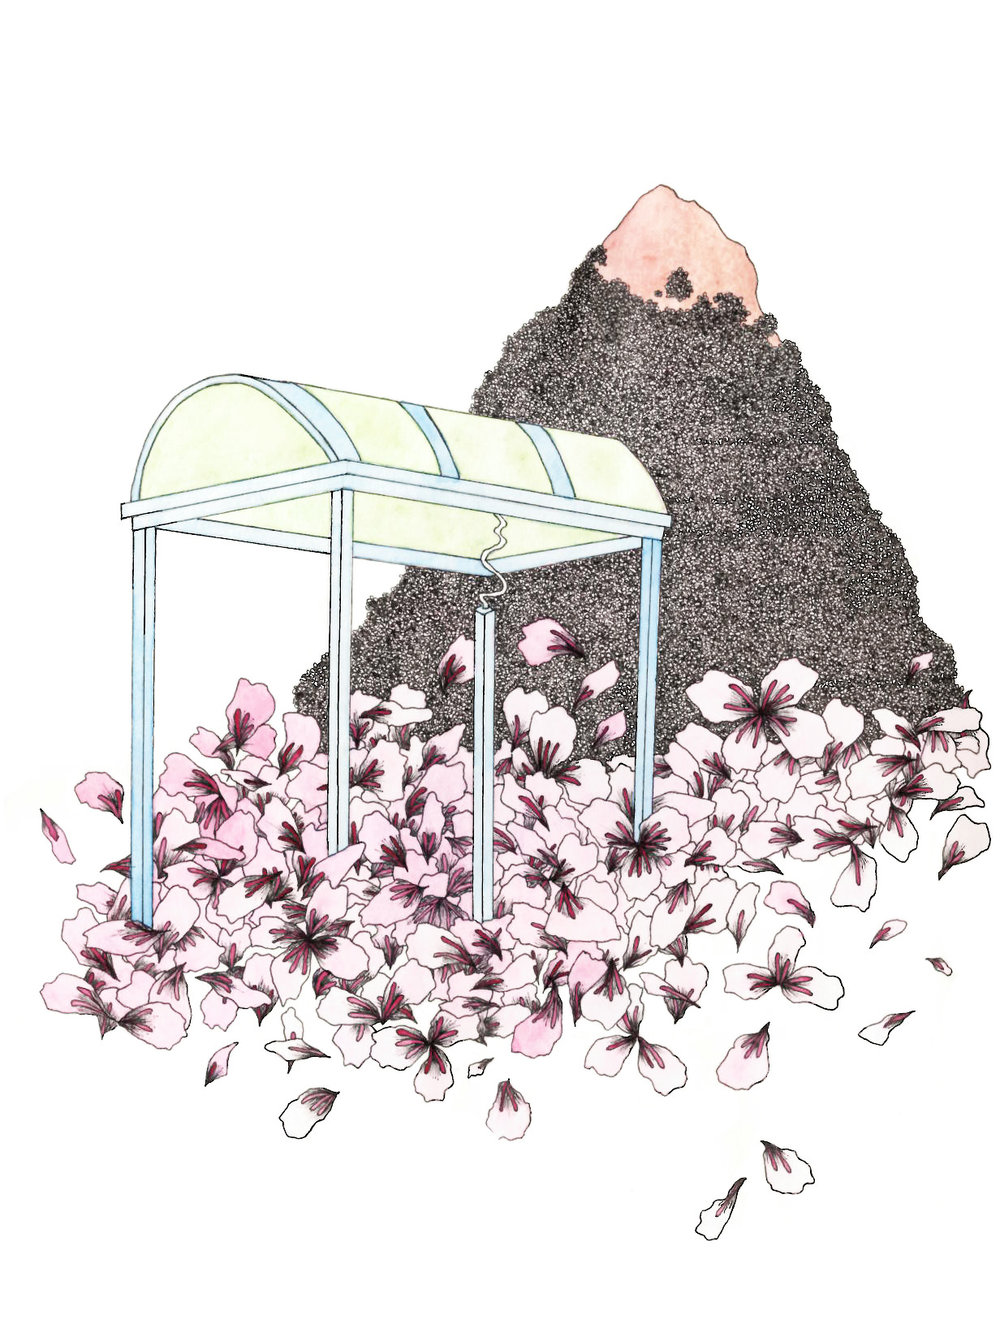 you've waited long enough to bloom, even the cherry blossom petals have fallen and flooded the bus station you're waiting at